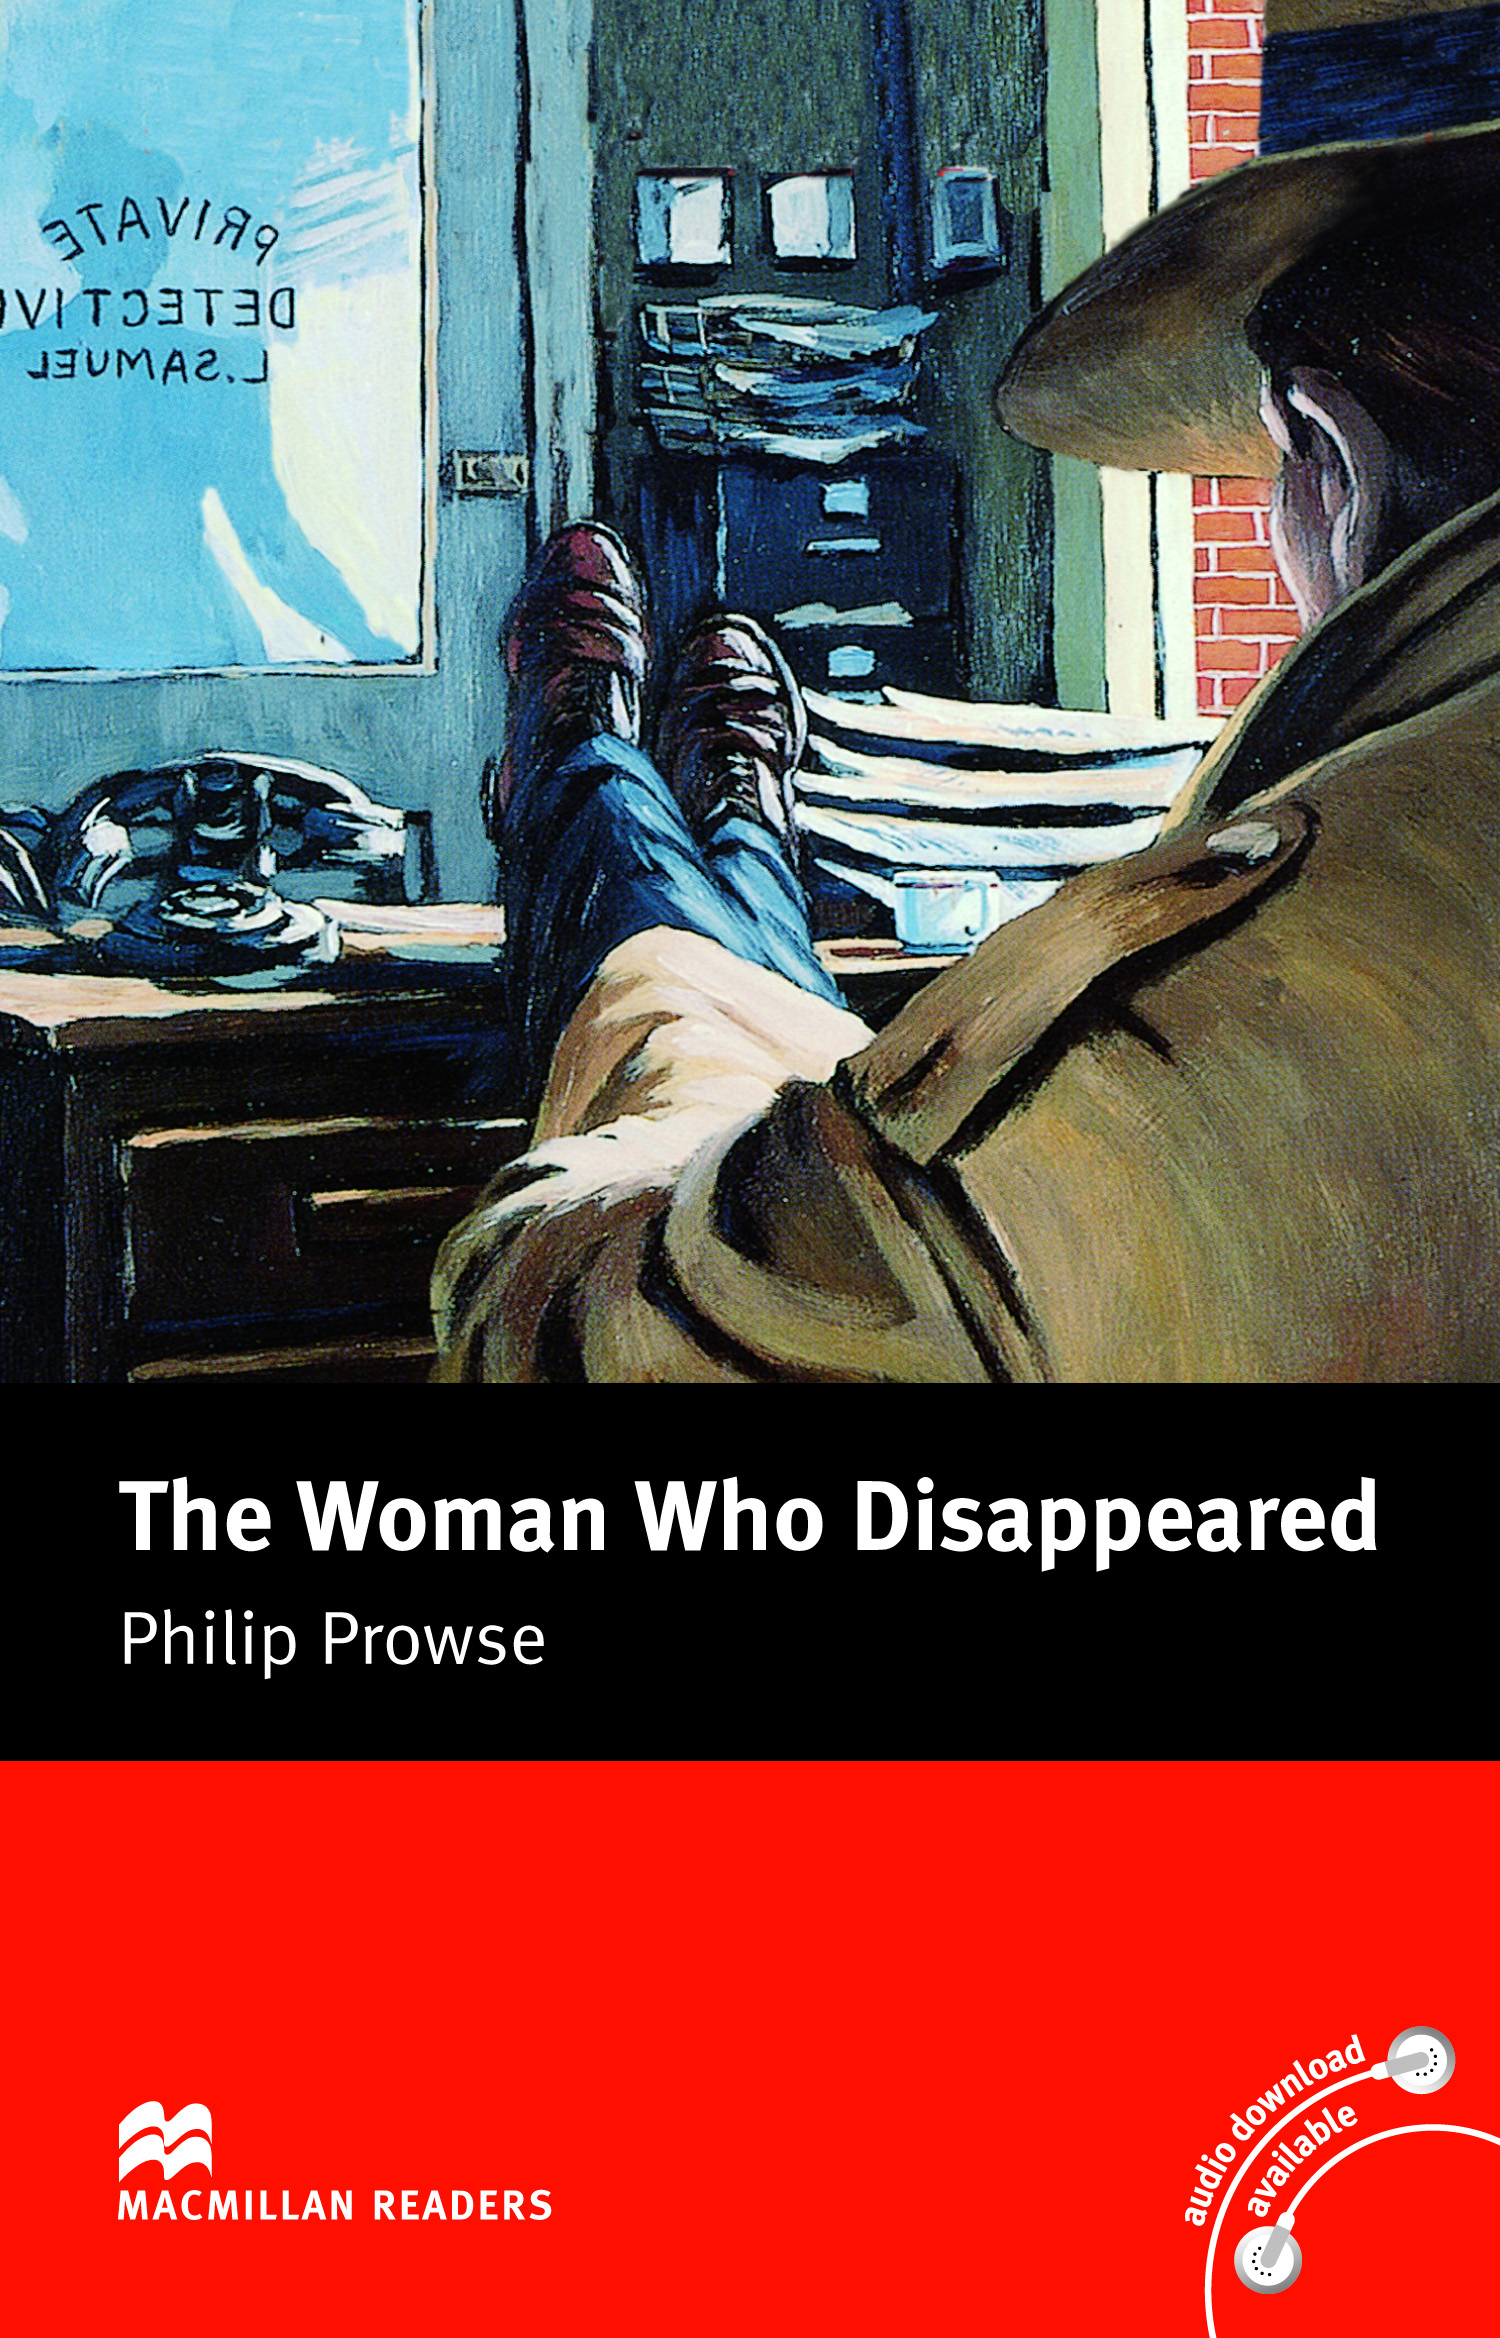 Macmillan Readers: The Woman Who Disappeared without CD